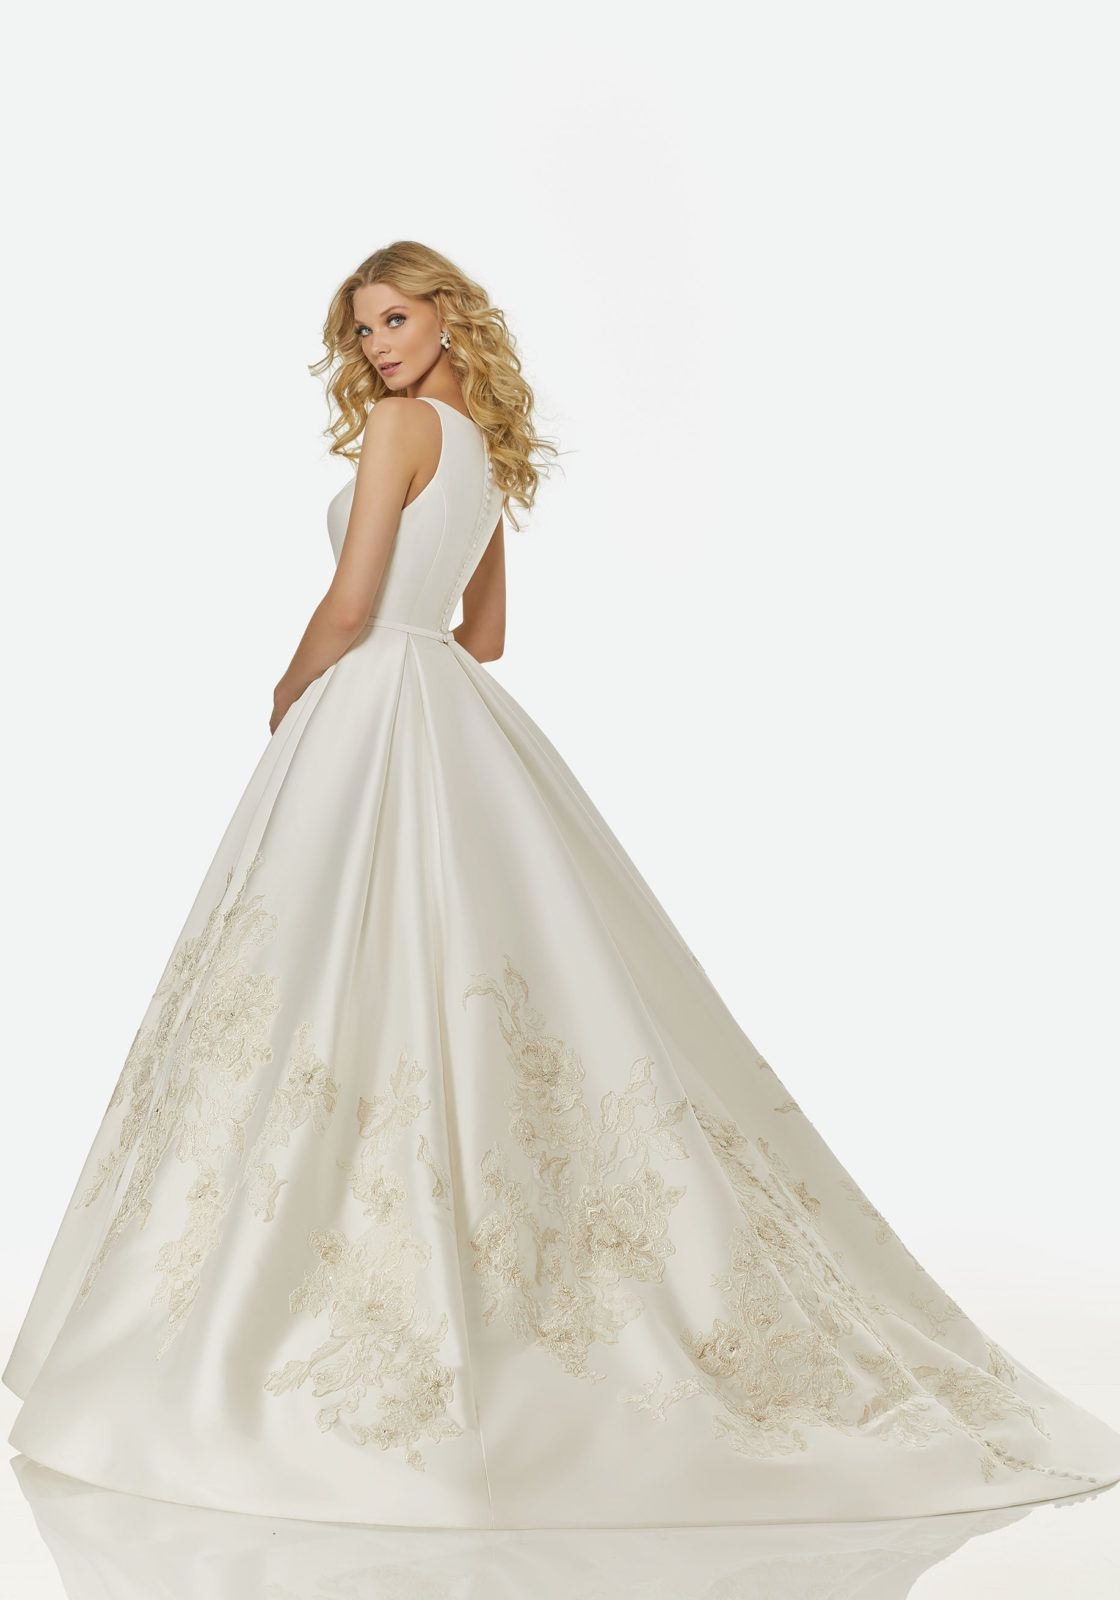 Grace wedding dress randy fenoli bridal wedding goals